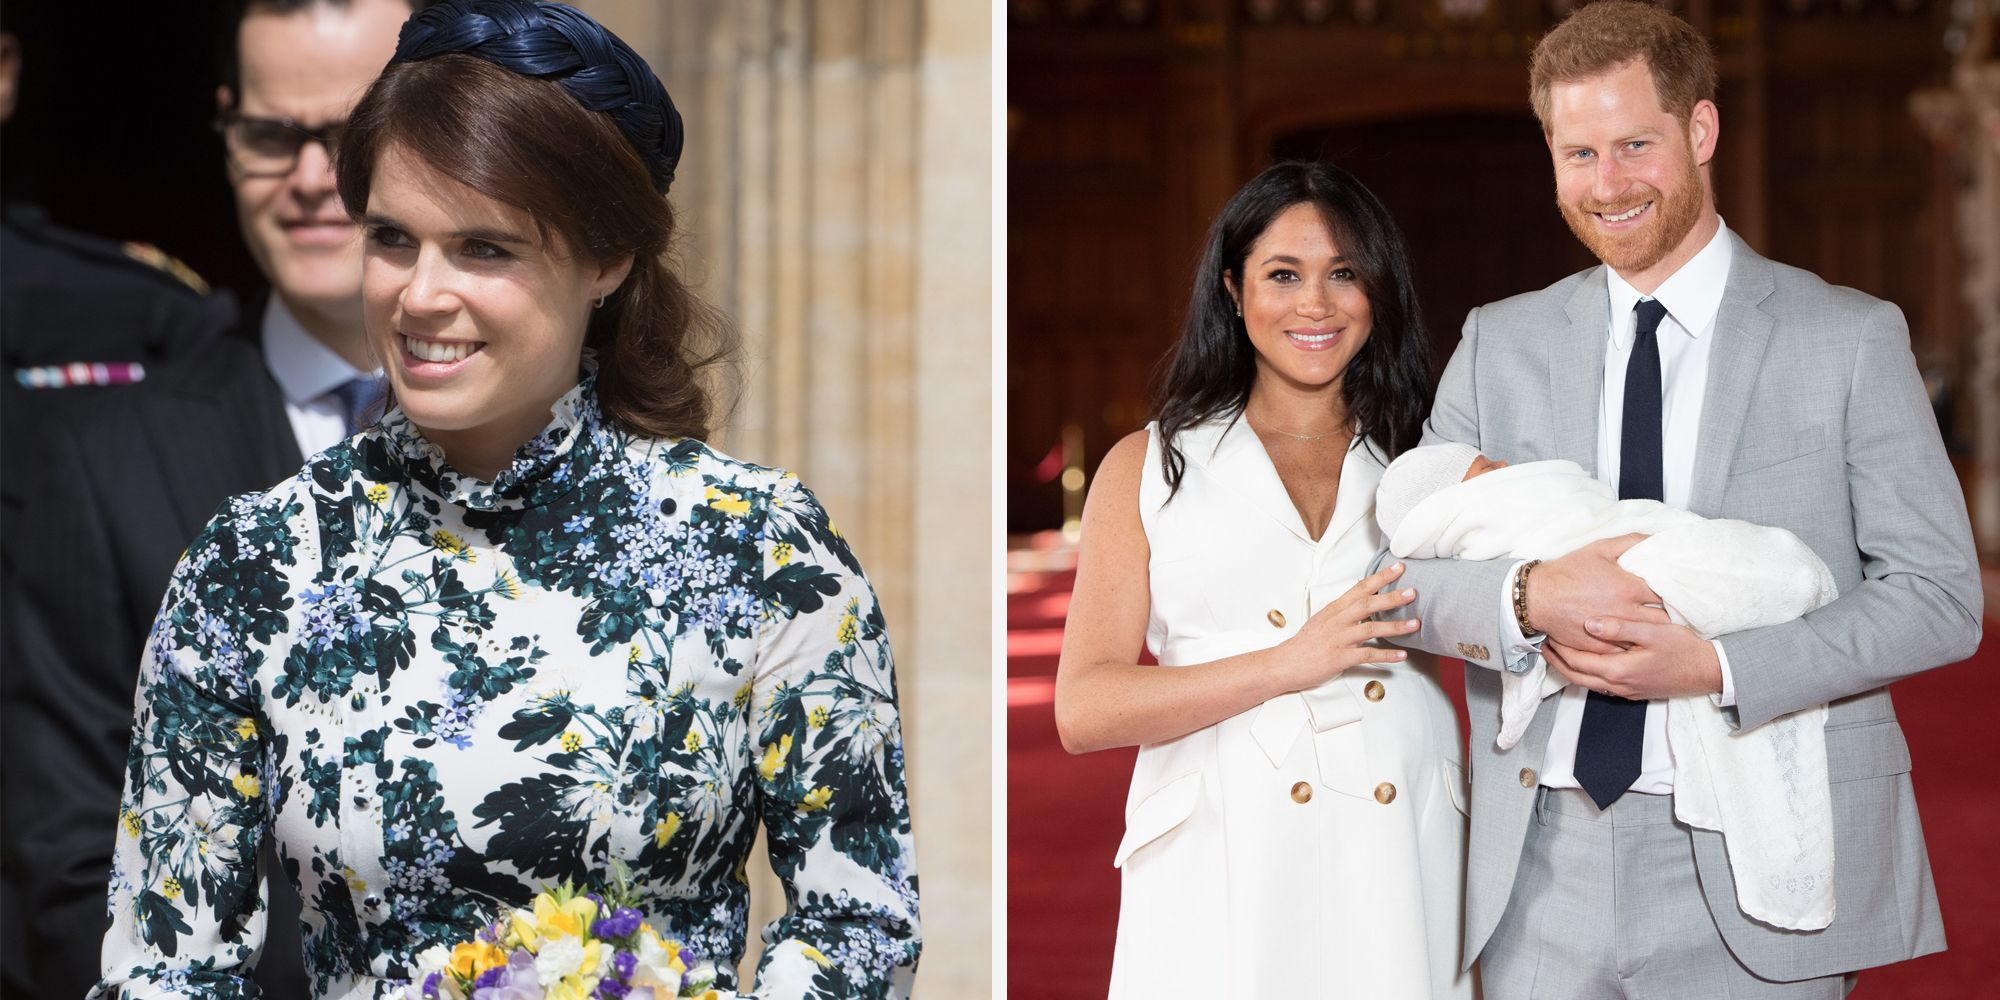 How the royal family reacted to meghan markle and prince harrys royal baby